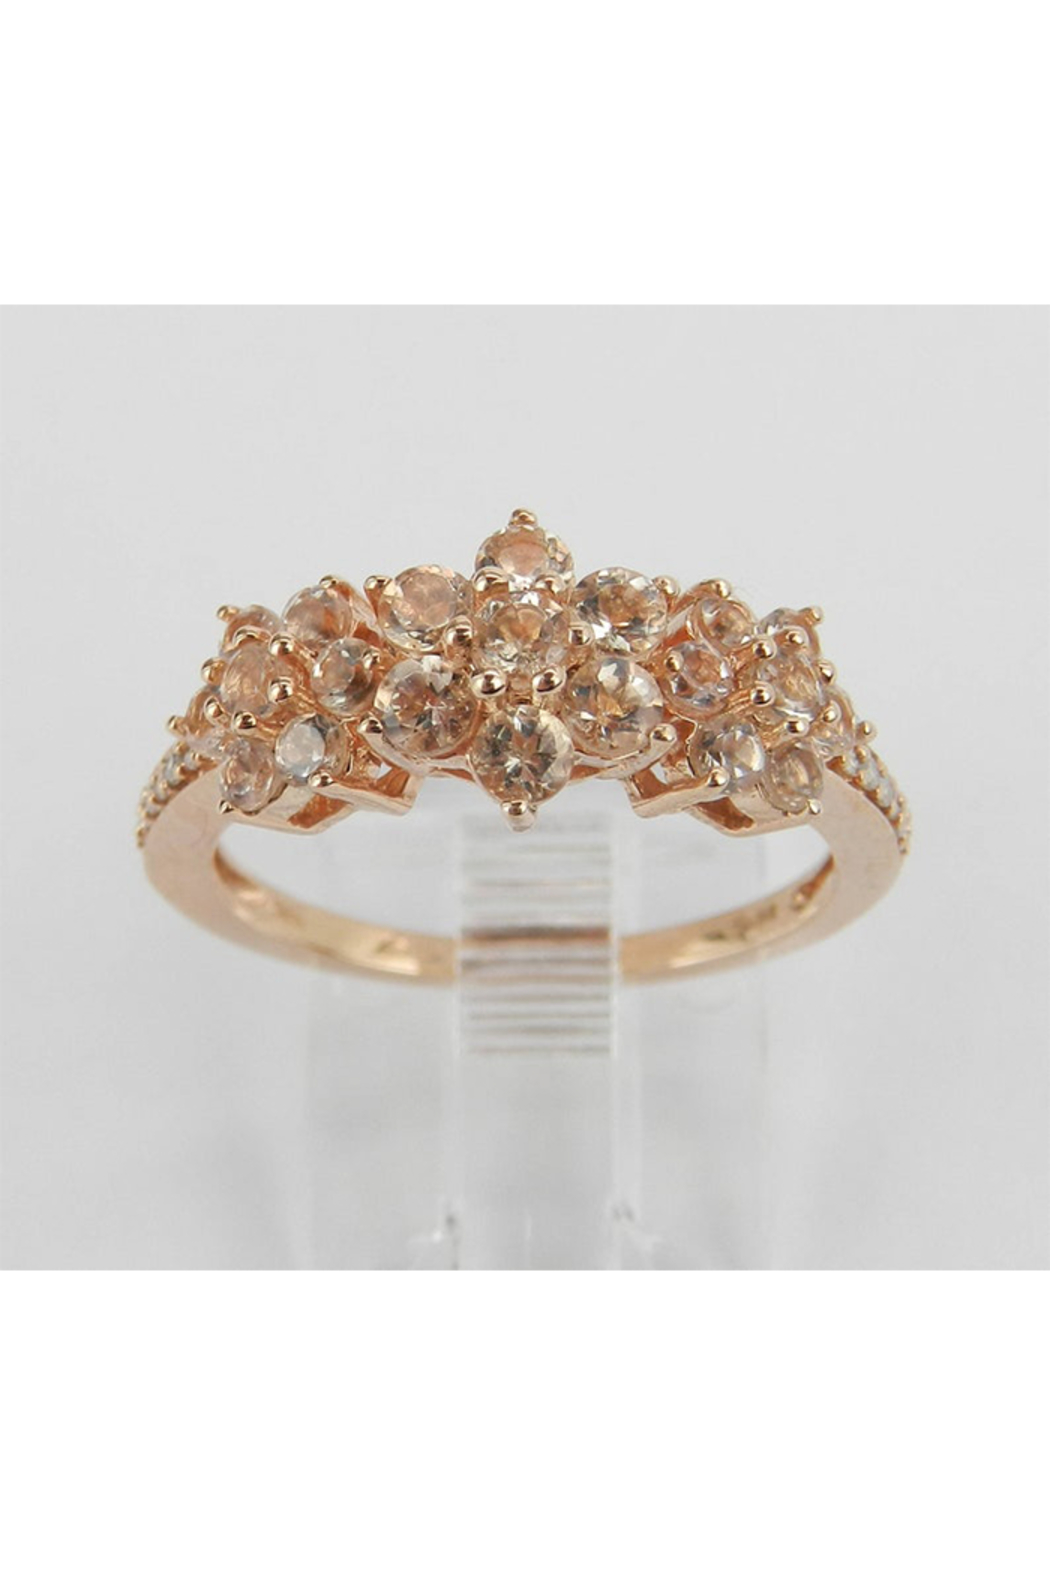 Margolin & Co Morganite and Diamond Flower Cluster Anniversary Ring Rose Pink Gold Size 7 - Main Image